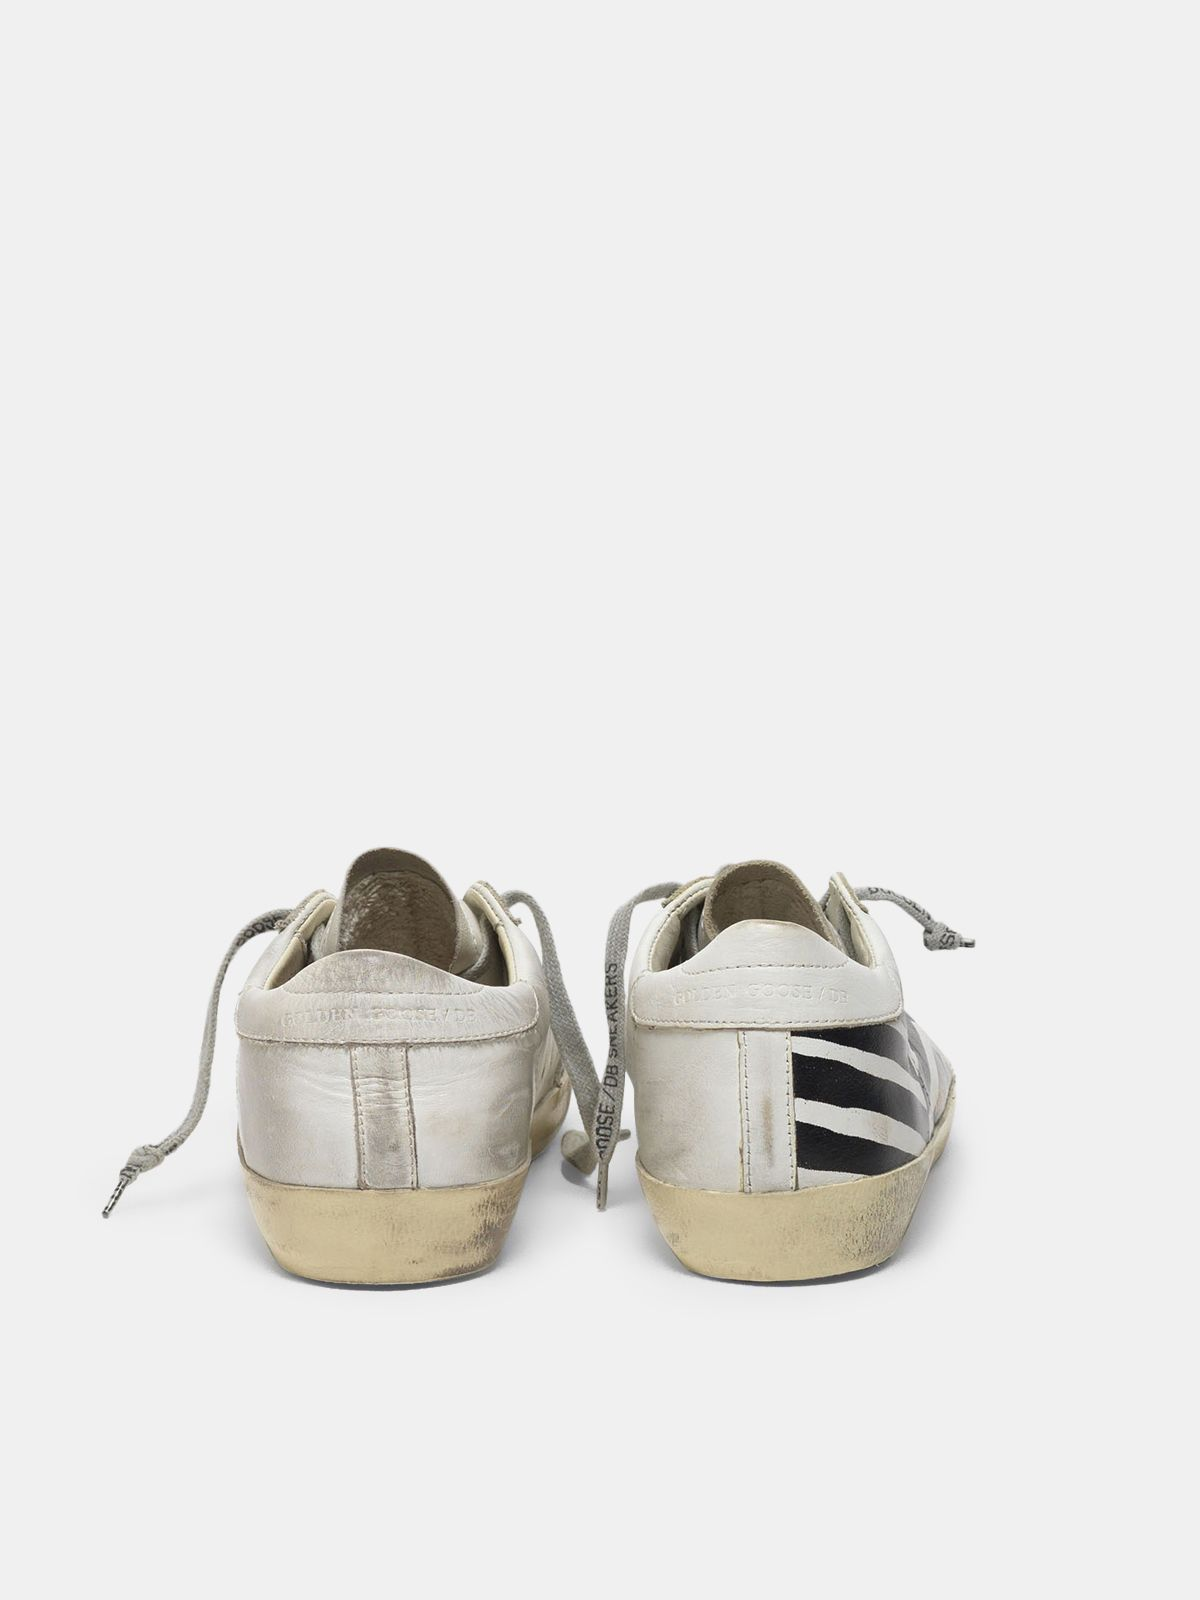 Golden Goose - Super-Star sneakers in leather with flag print in